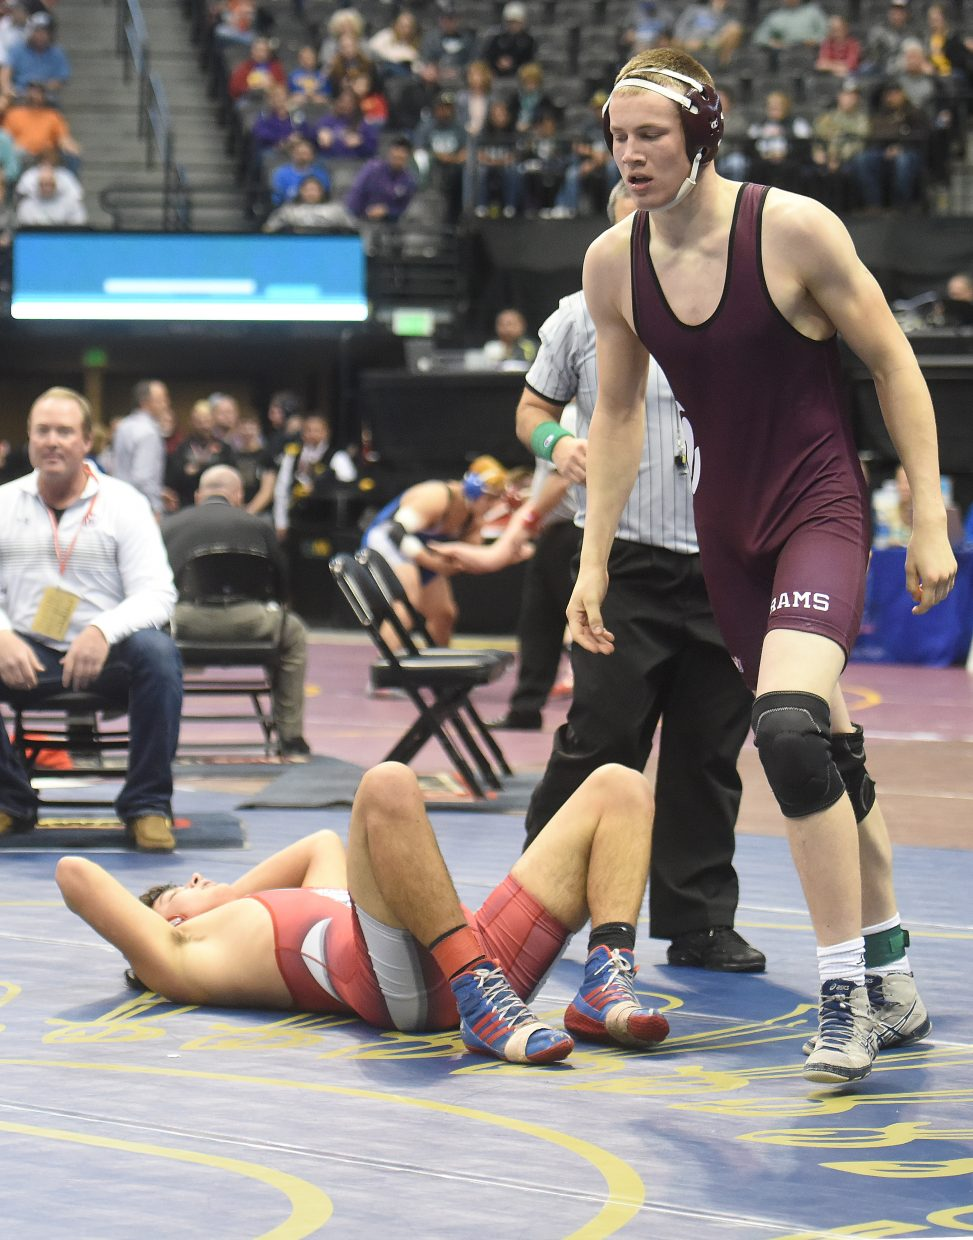 Soroco's Sky Carlson walks away after a quarterfinal pin on Friday at the state wrestling championships in Denver.